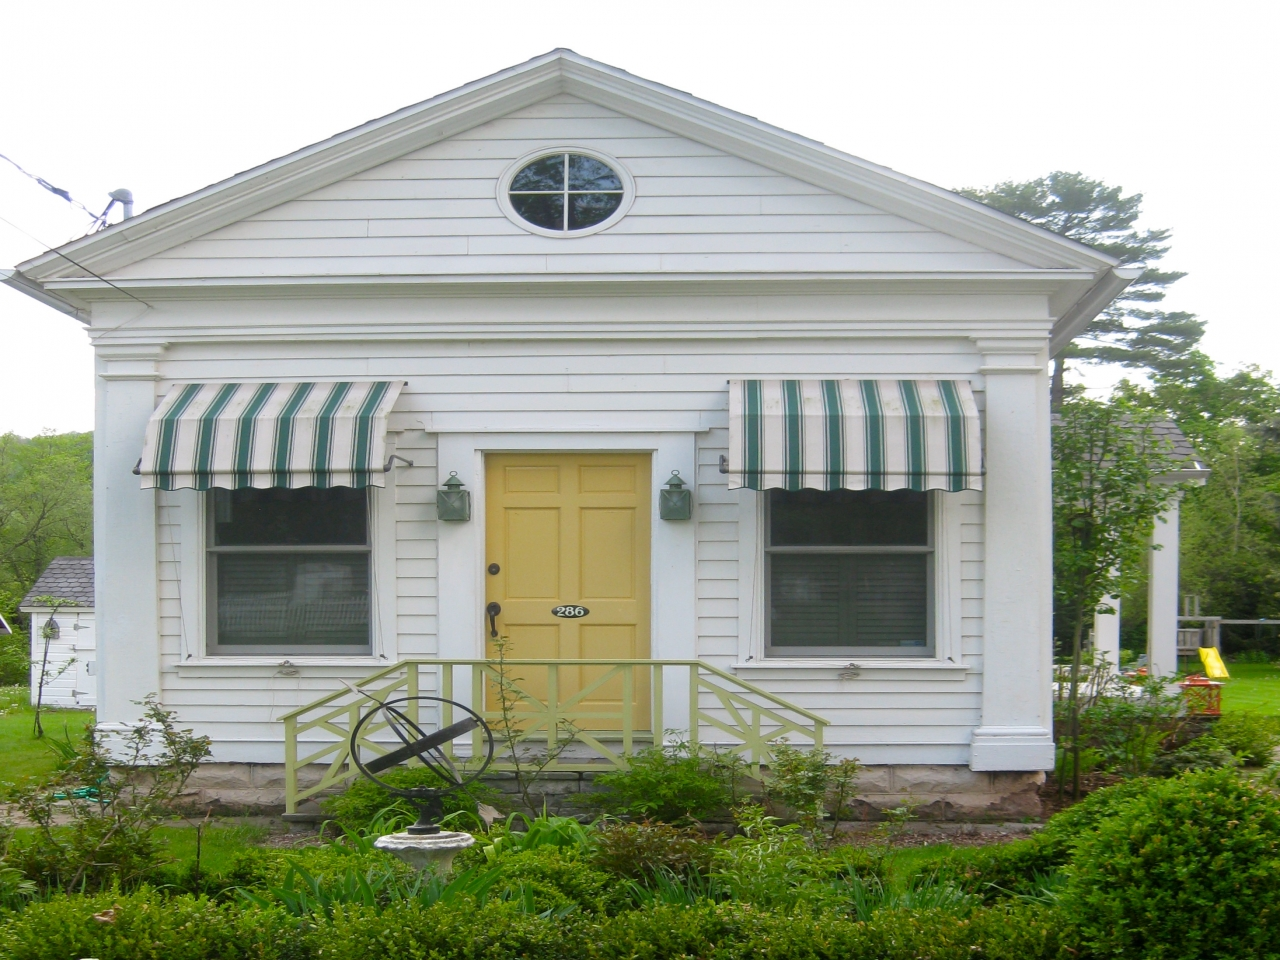 Houseboat Awnings Small House with Awning greek revival